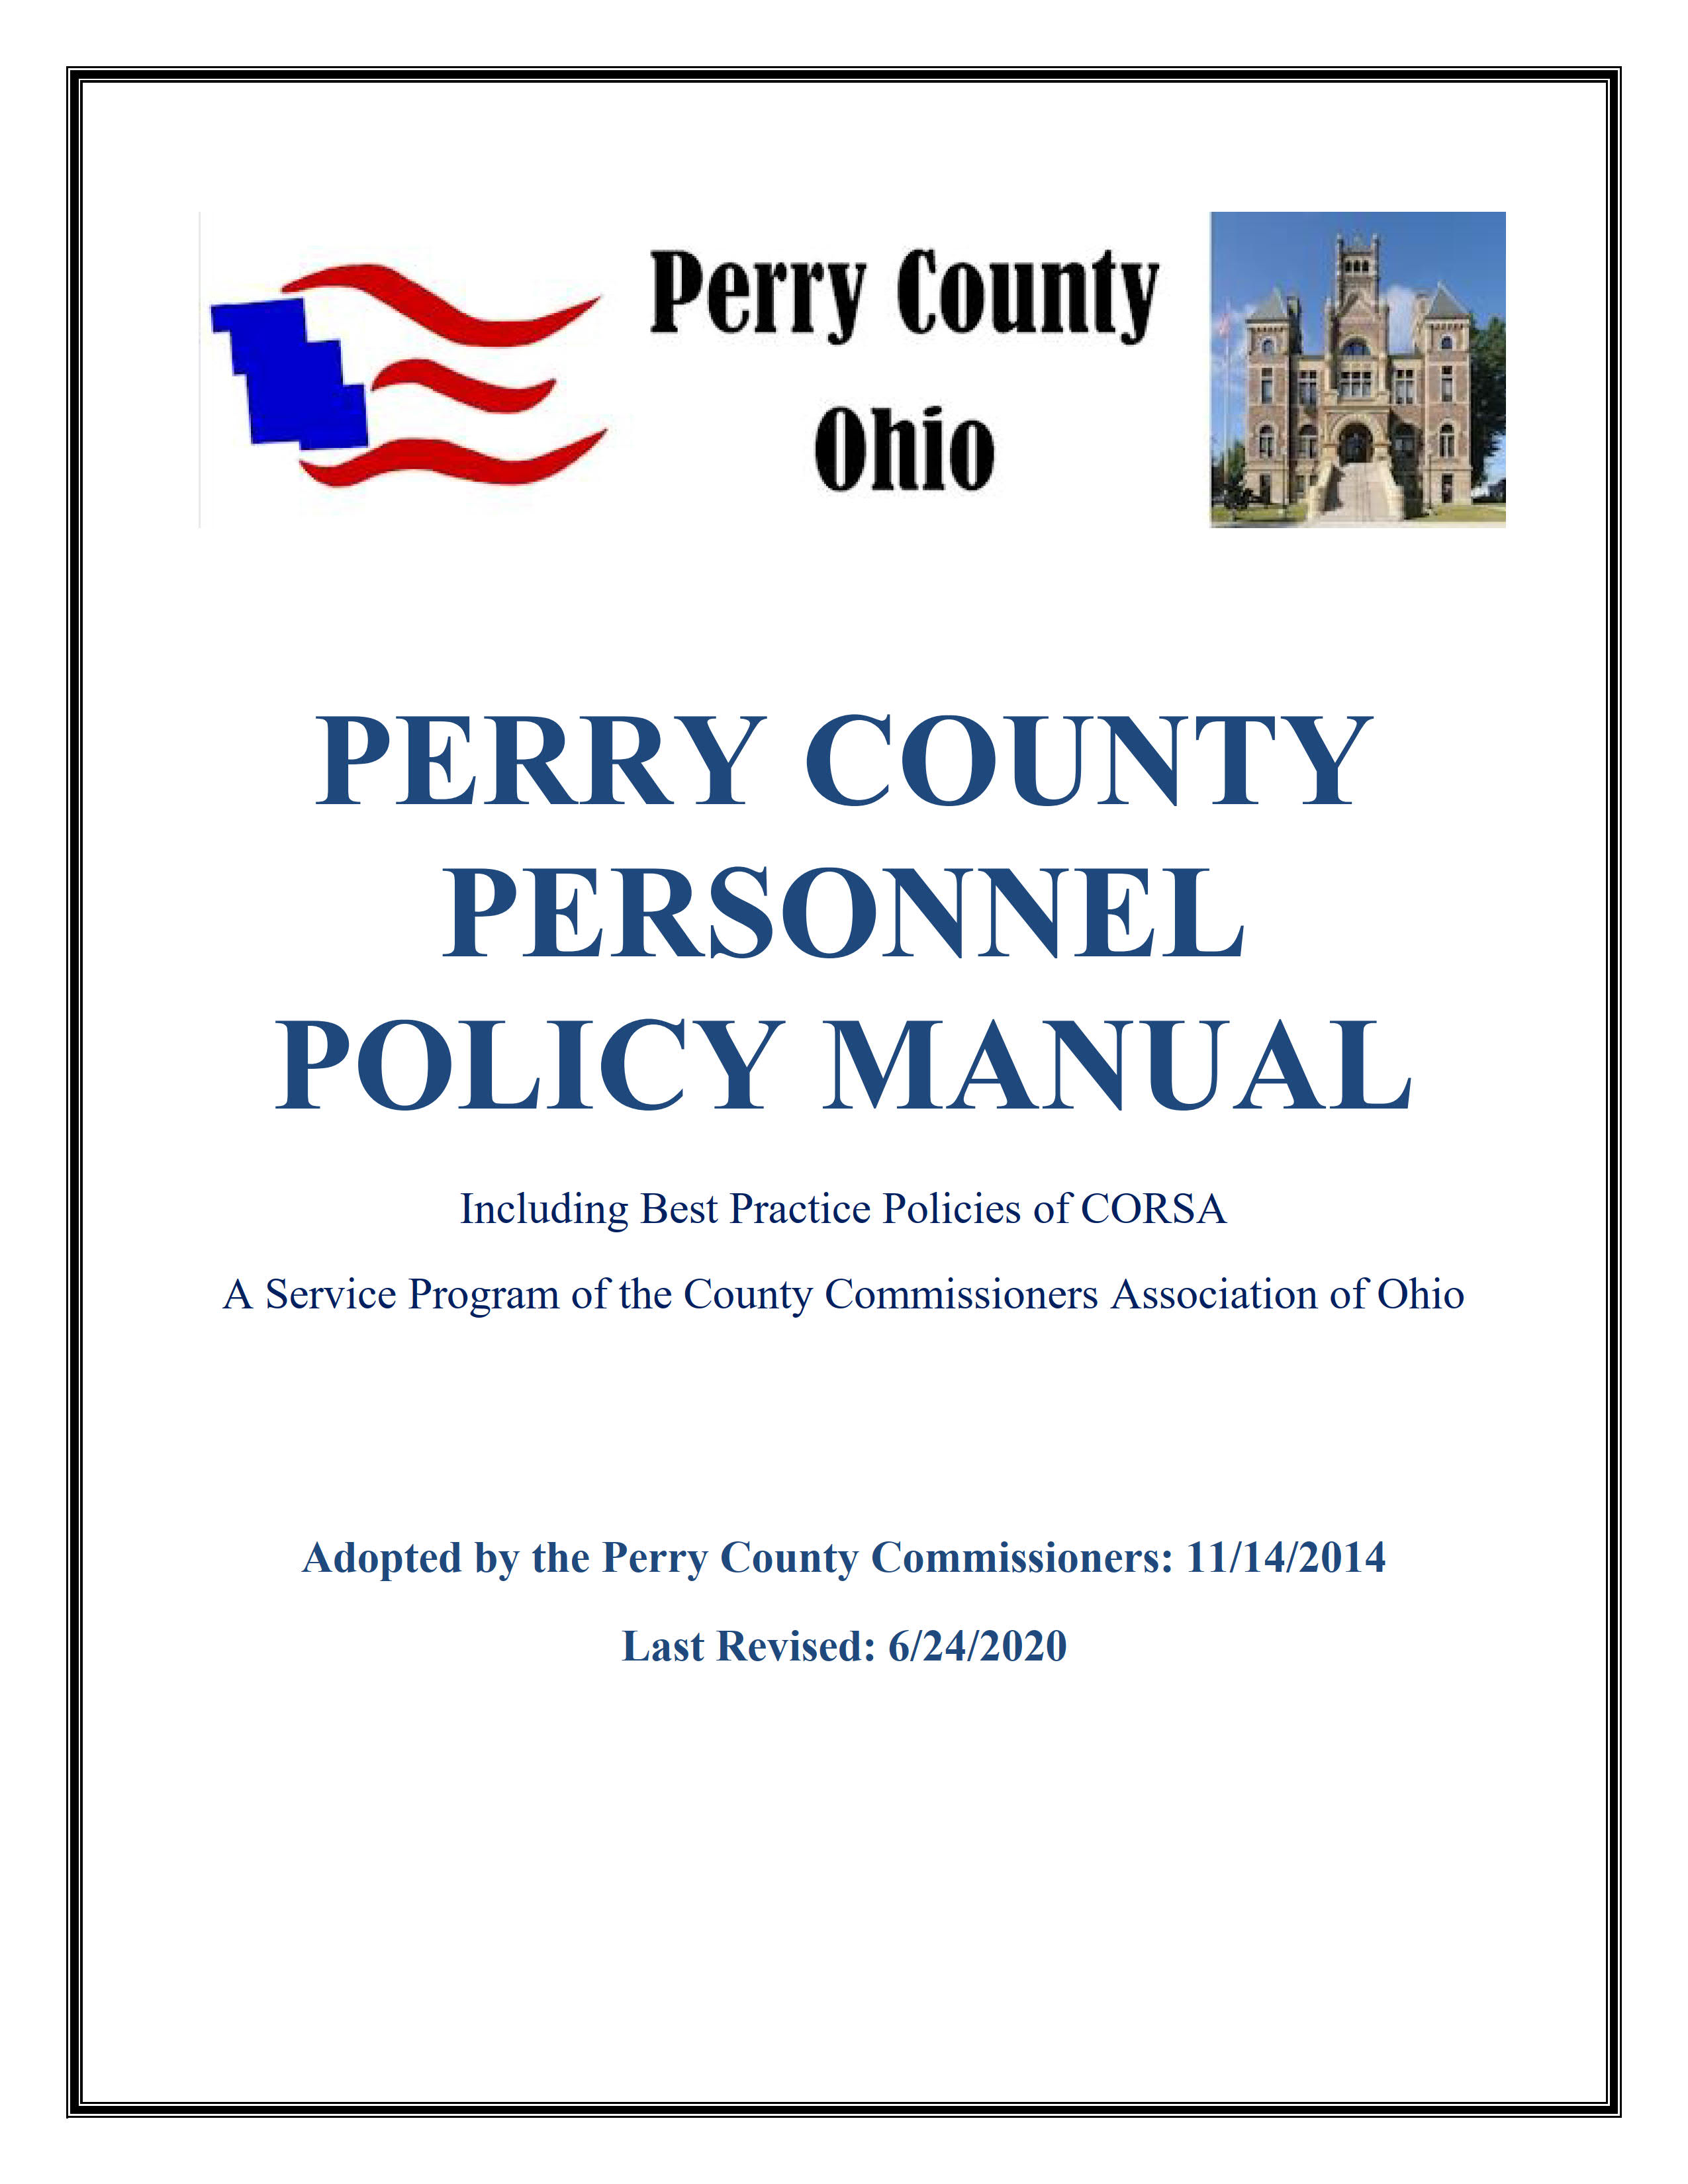 Updated Perry County Personnel Policy Manual to Revision  06/24/2020